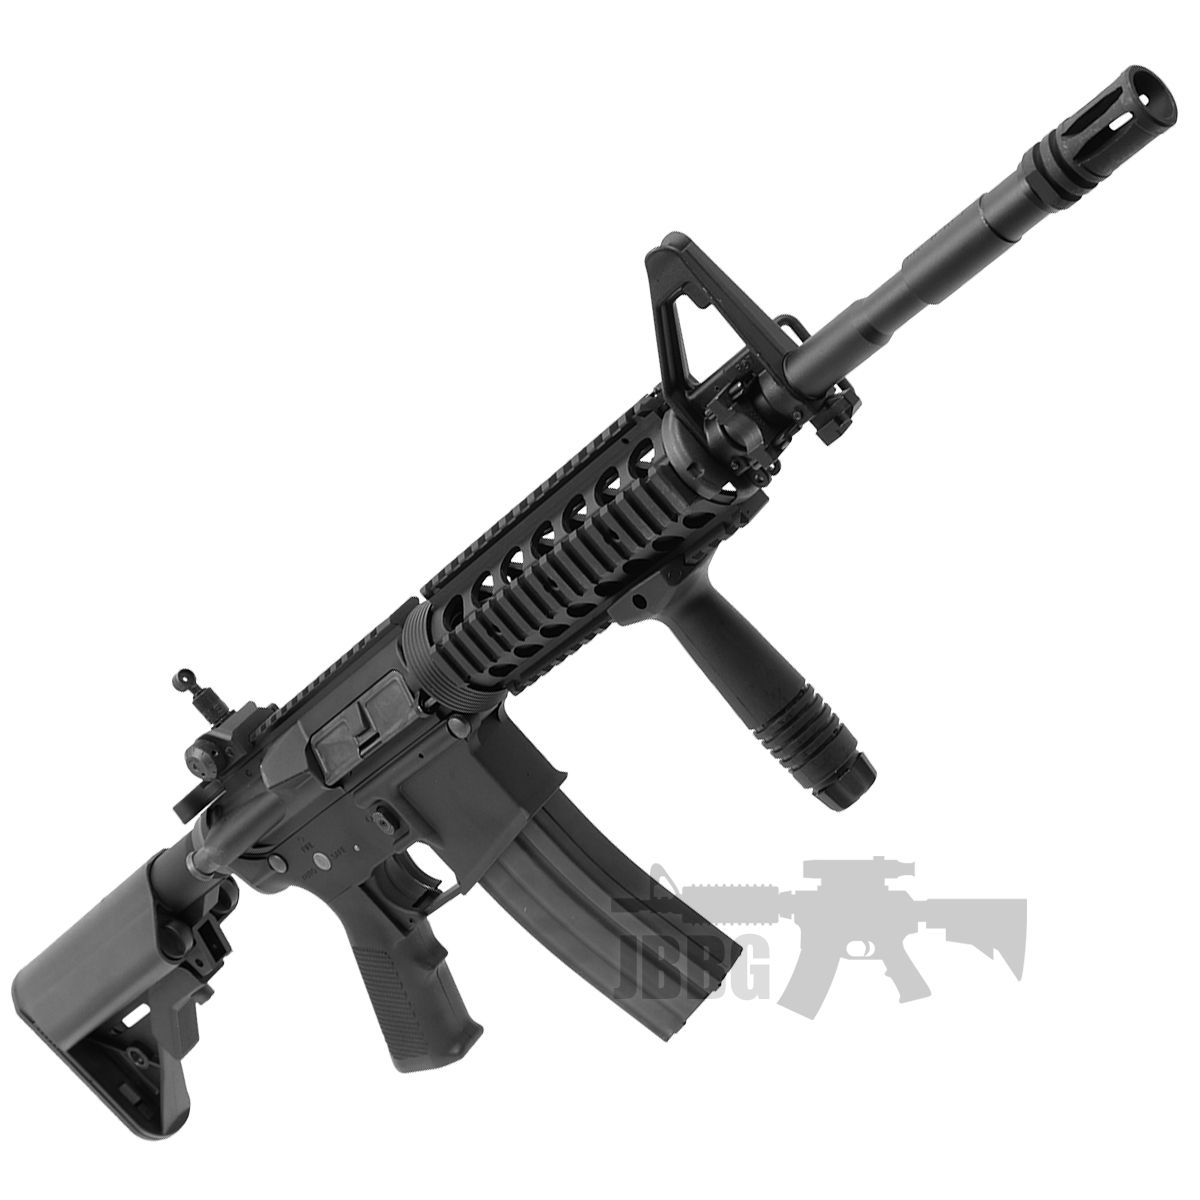 King Arms M4 RIS with Mosfet Advance Airsoft Gun 3